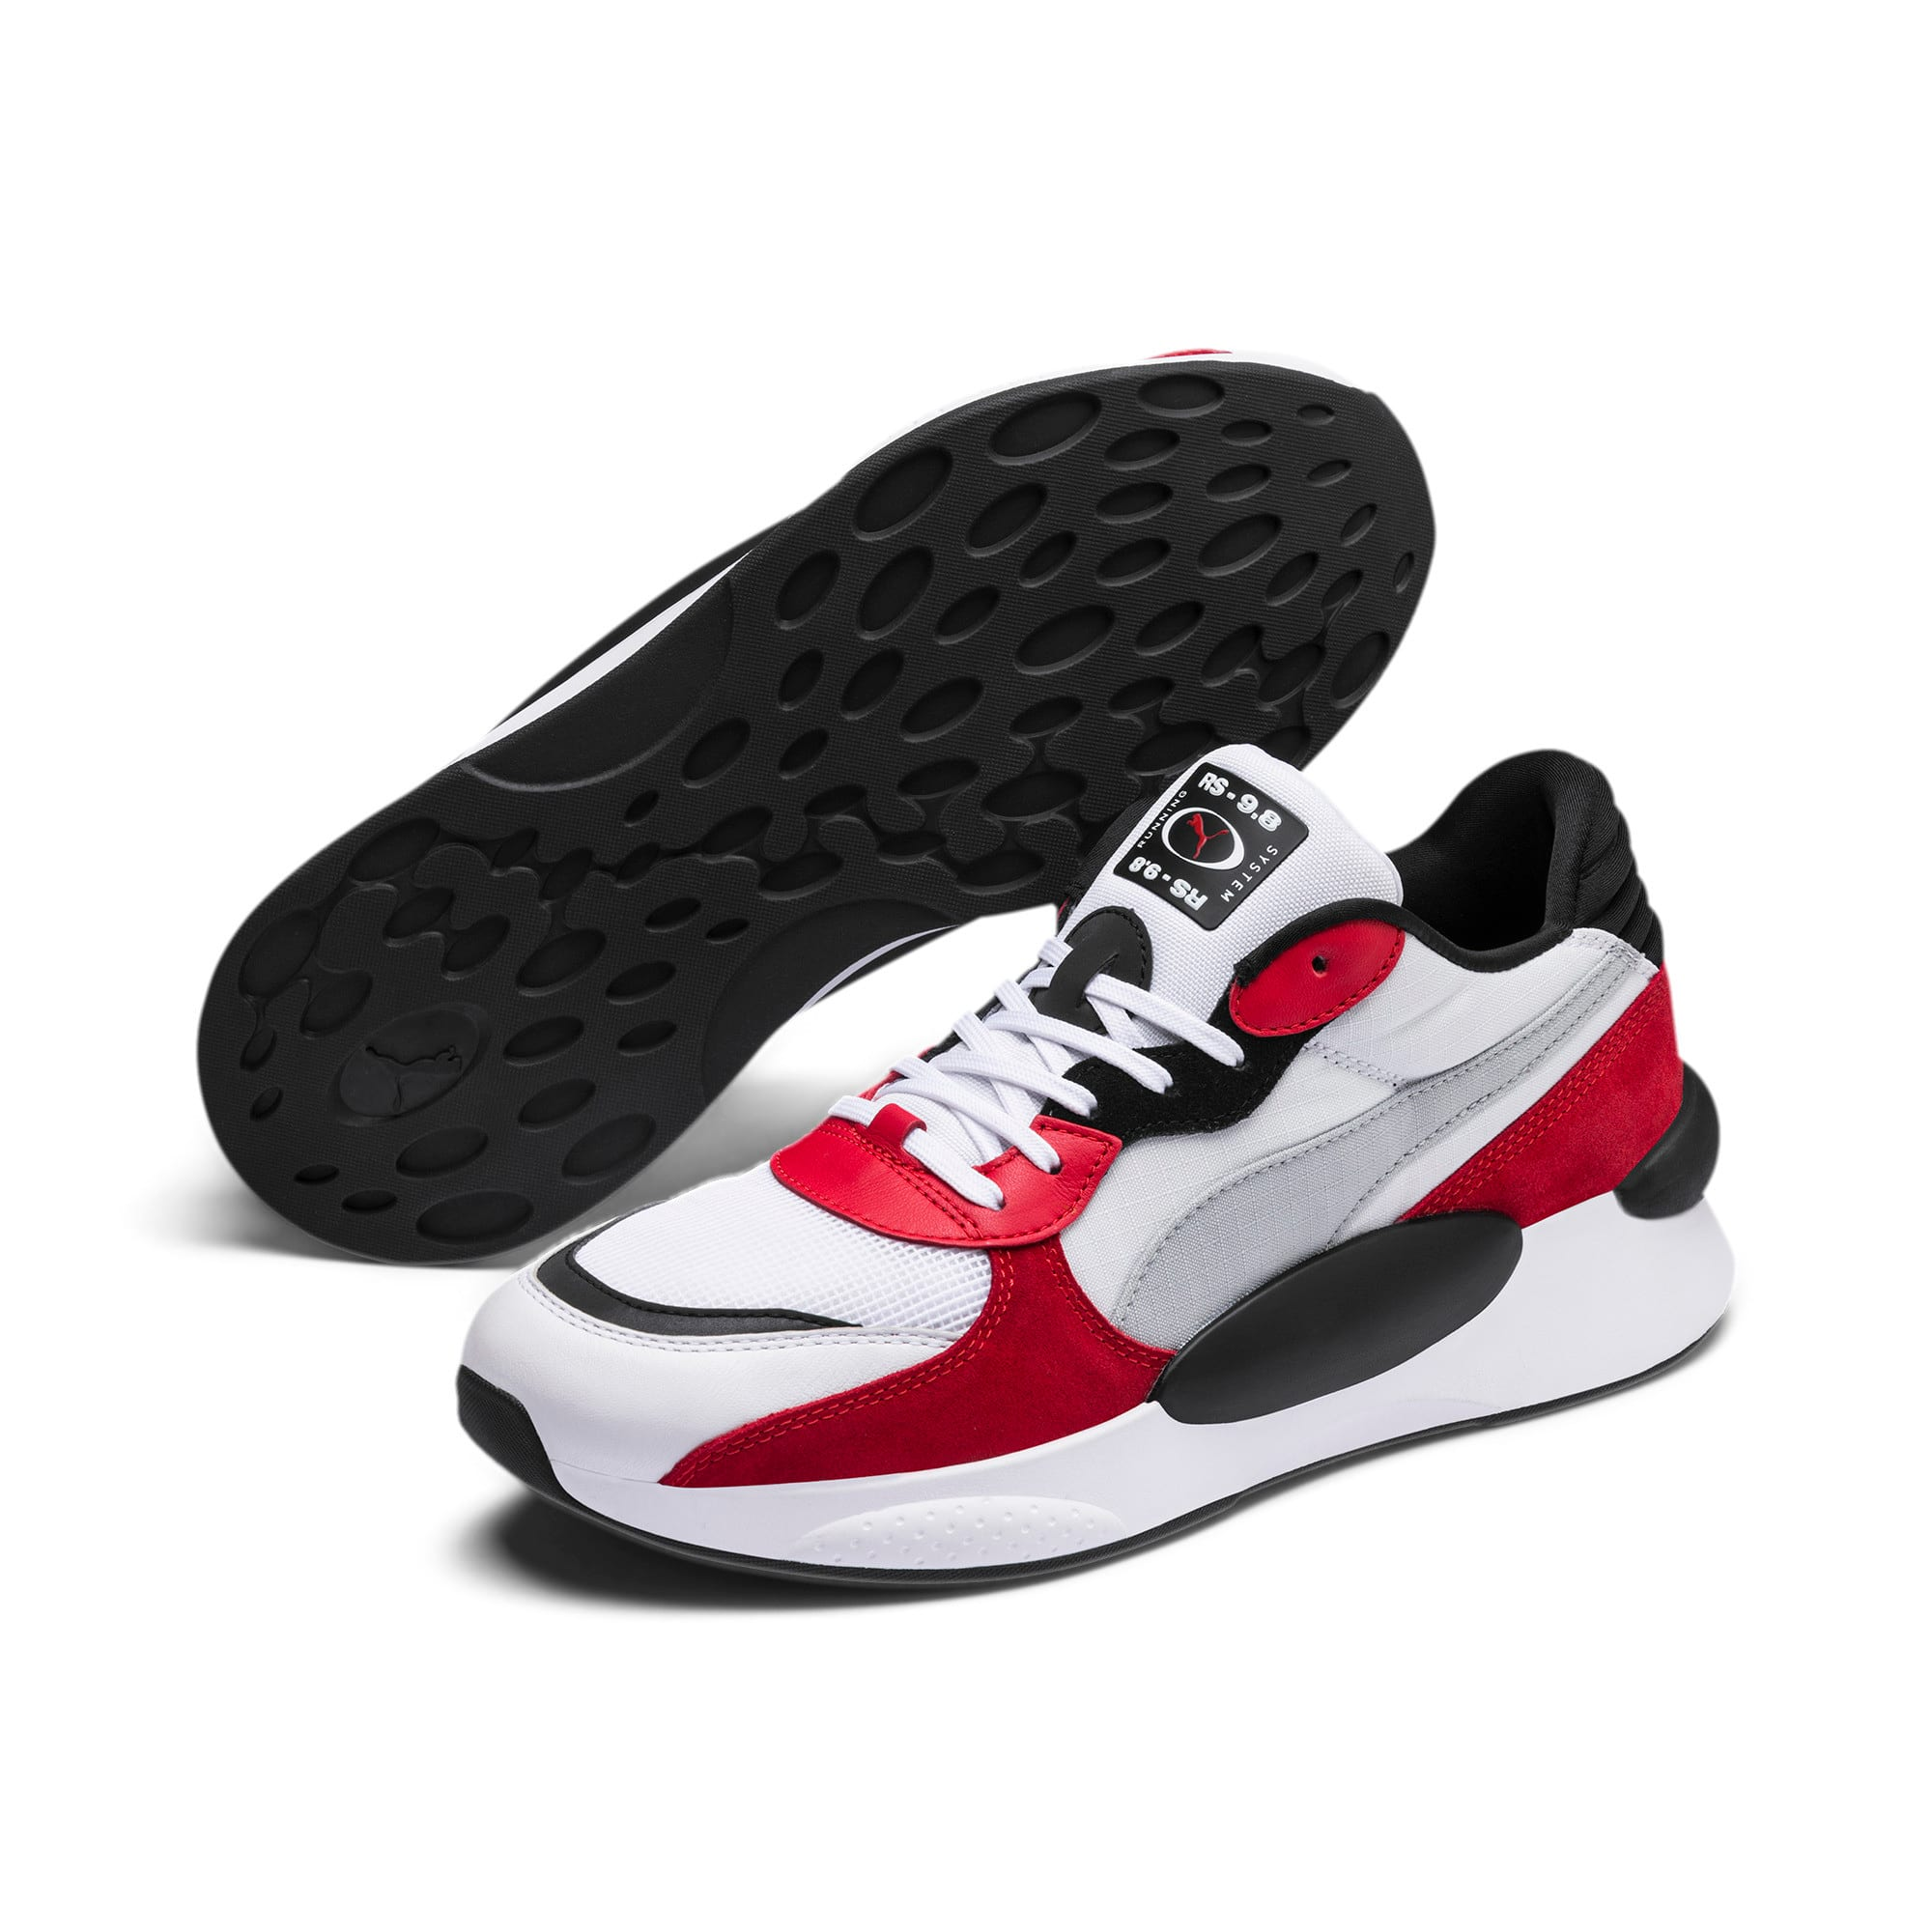 Thumbnail 3 of RS 9.8 Space Sneakers, Puma White-High Risk Red, medium